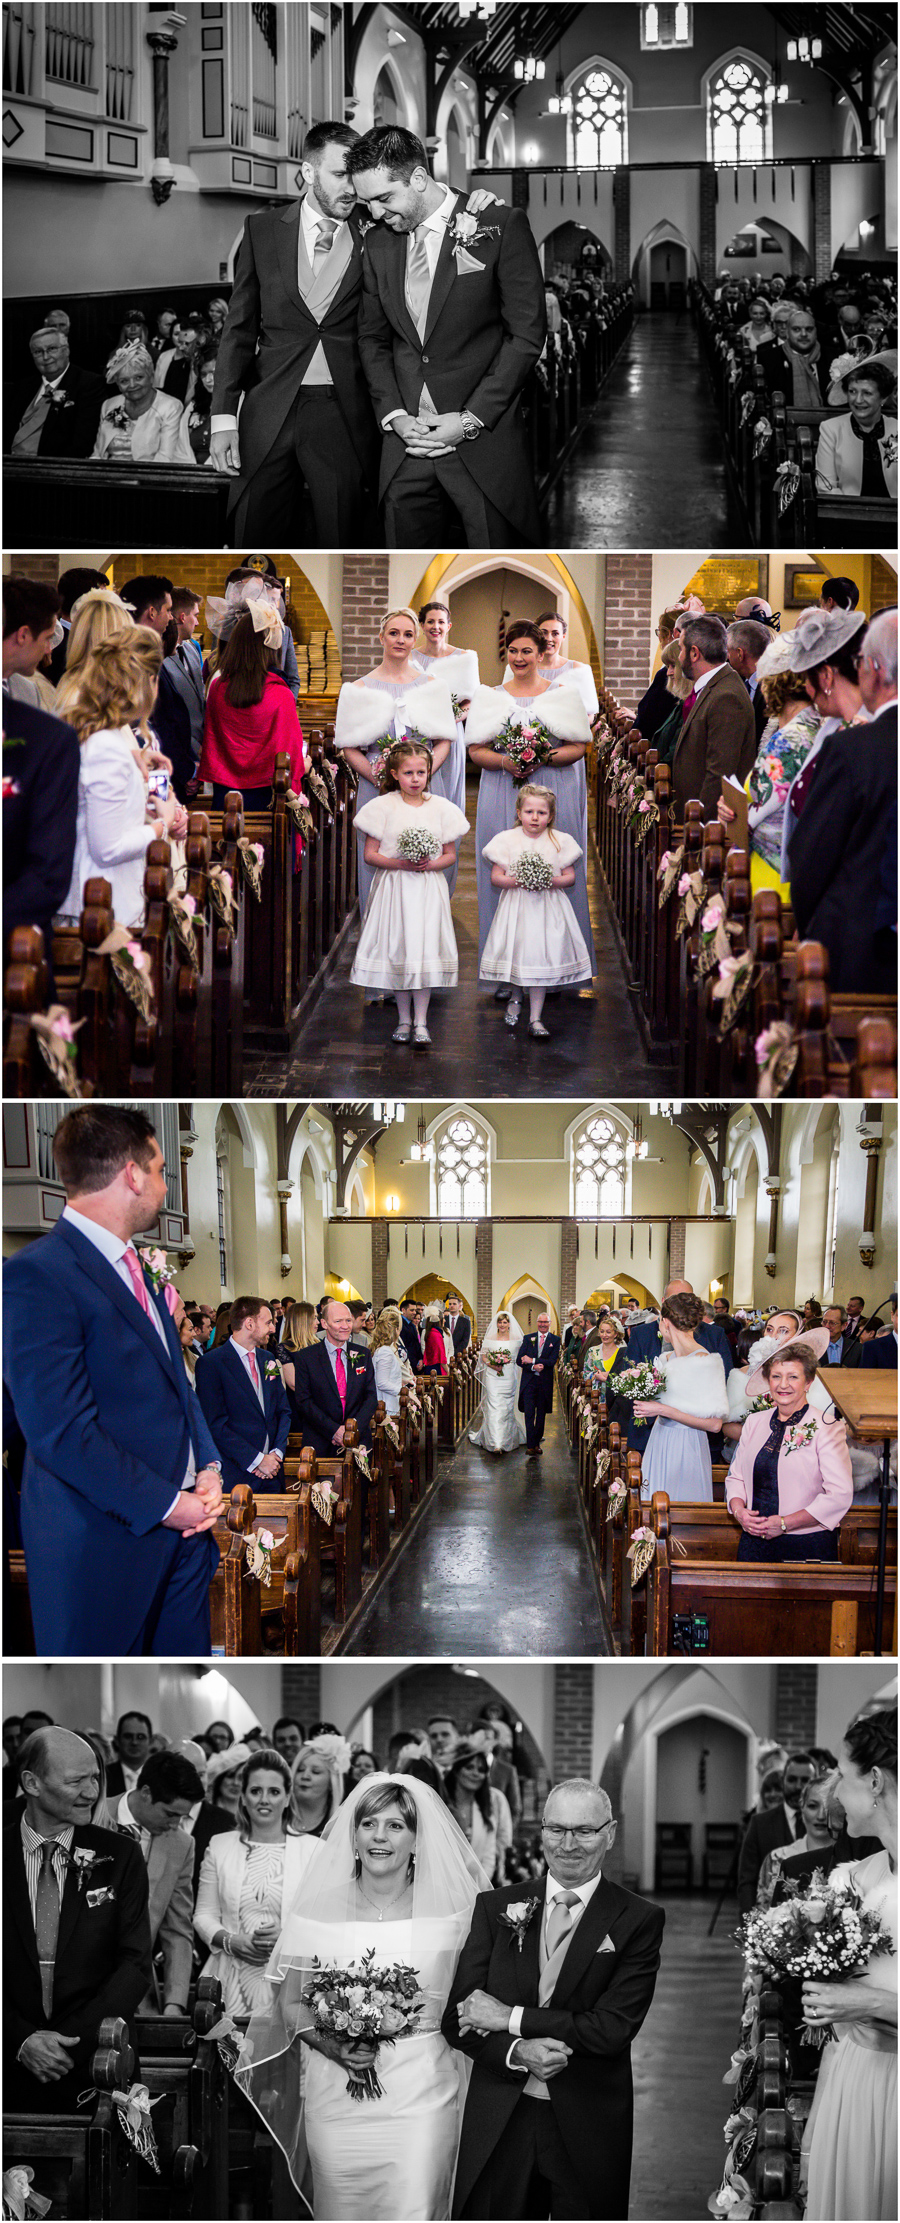 yorkshire wedding photographer - flower girls walking down the aisle